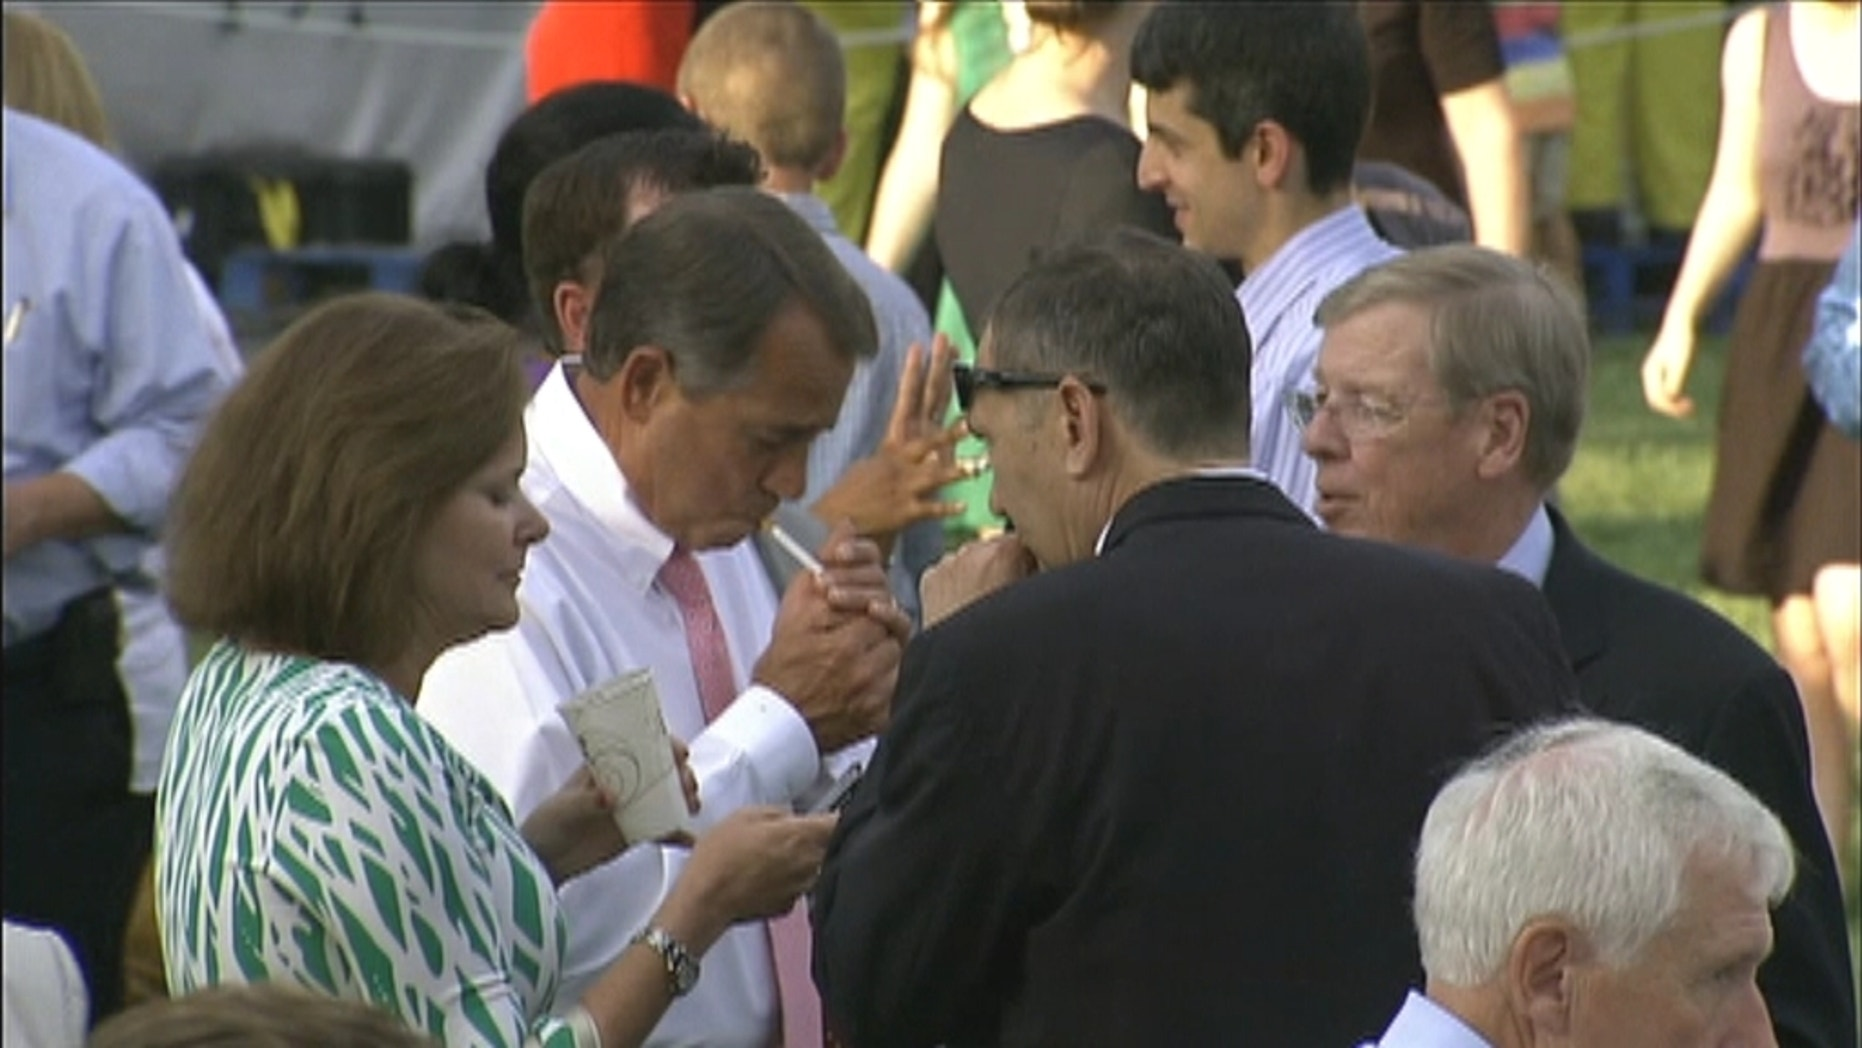 In this video frame from the White House congressional picnic on Wednesday, House Speaker John Boehner lights up.